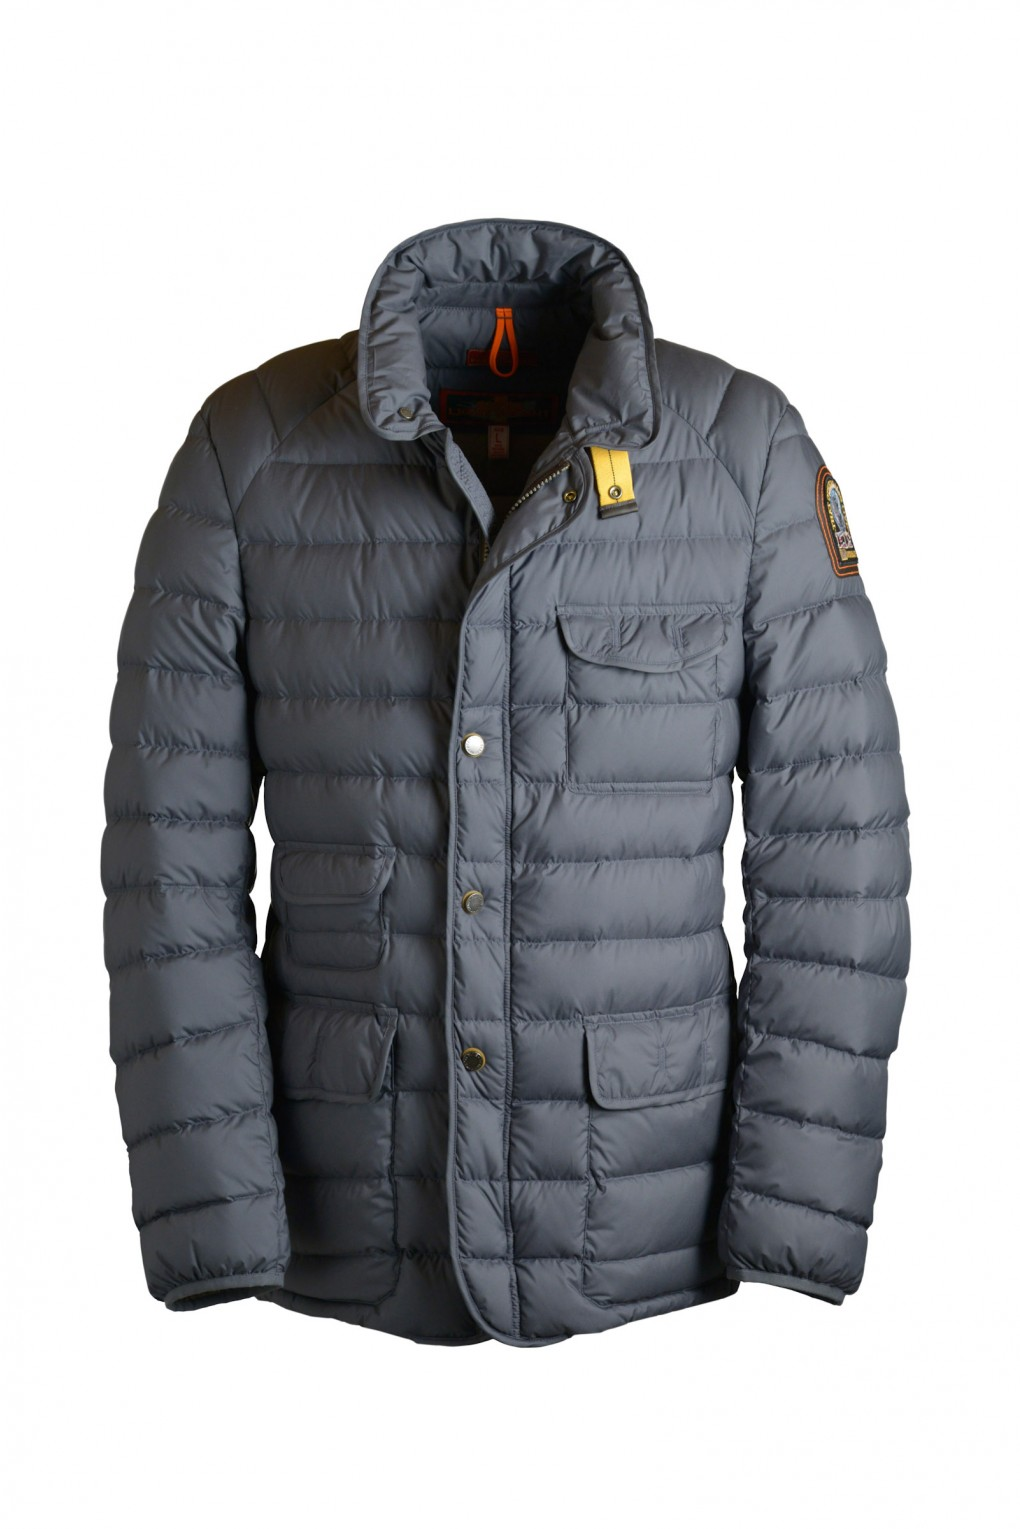 parajumpers ORSO man outerwear Anthracite